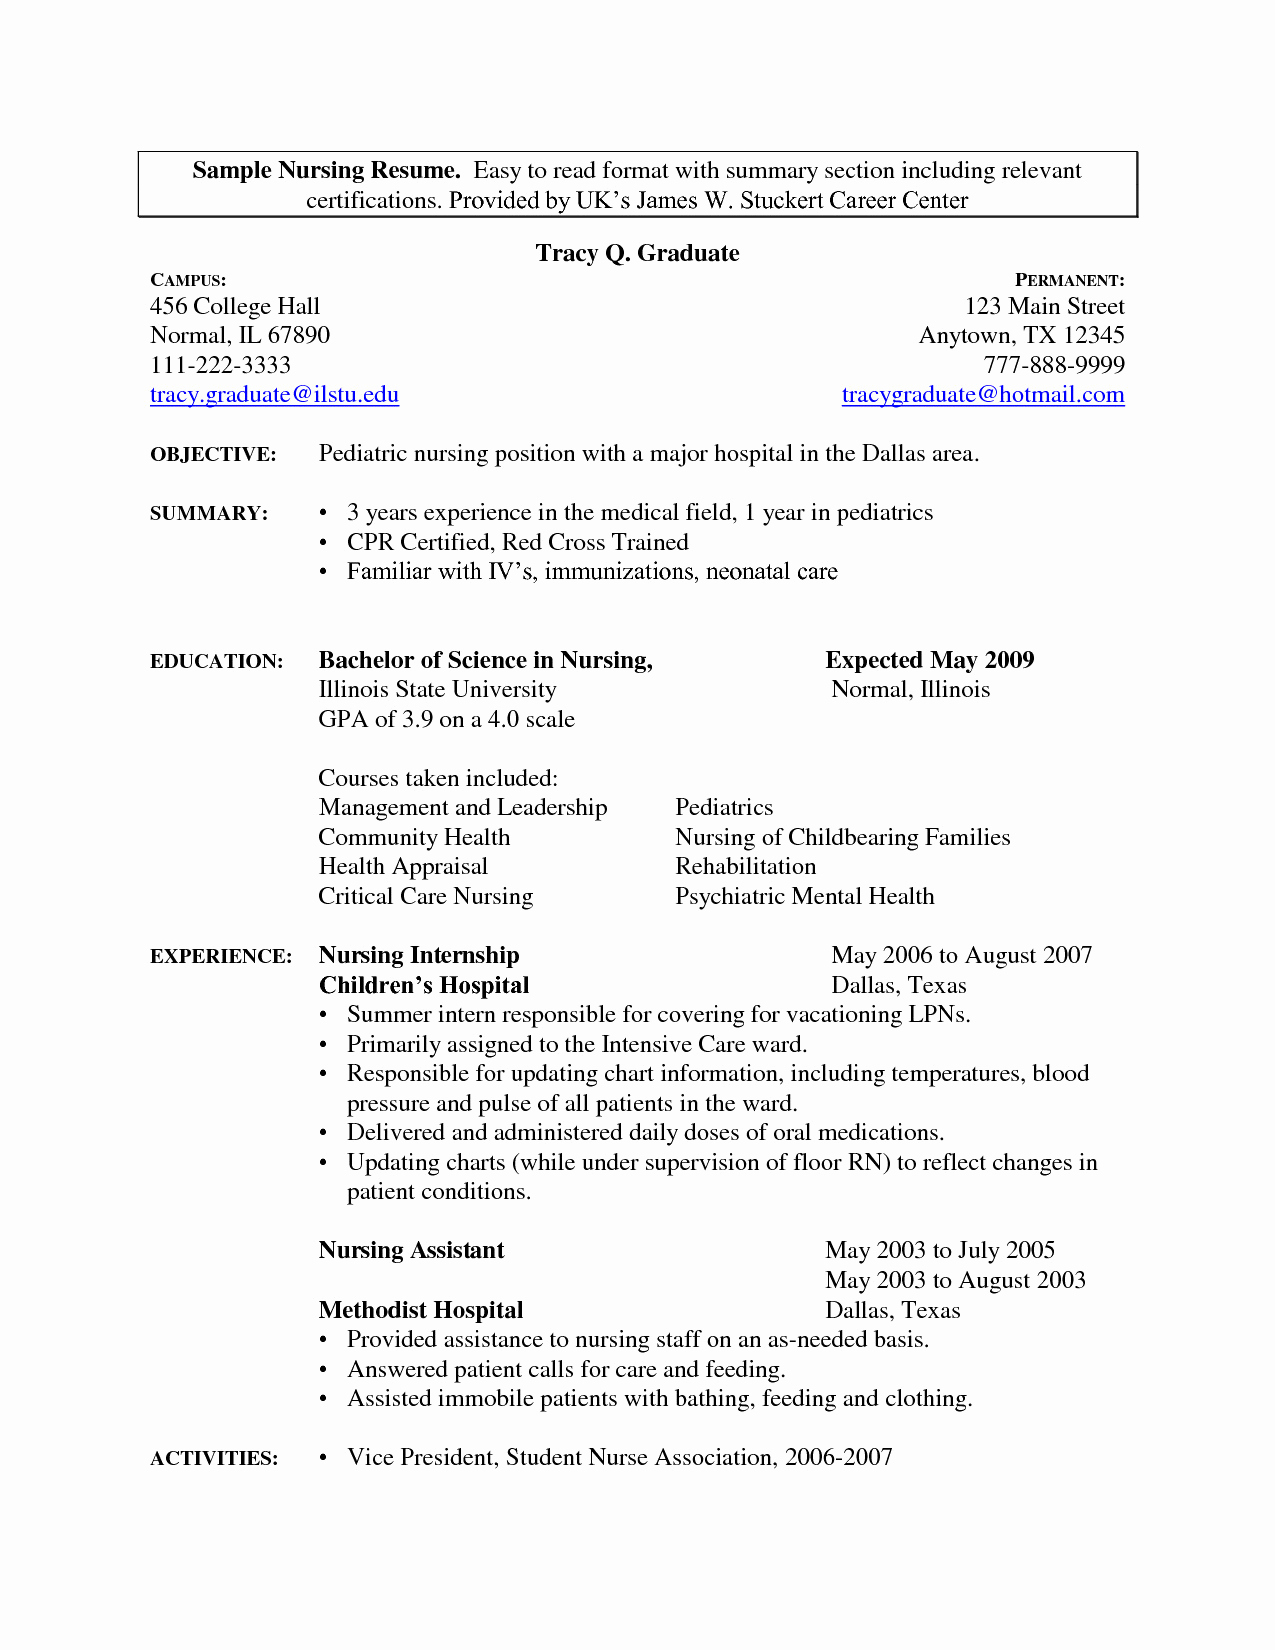 Resume Cover Letter Template for Medical assistant - Medical assistant Sample Resumes Roddyschrock